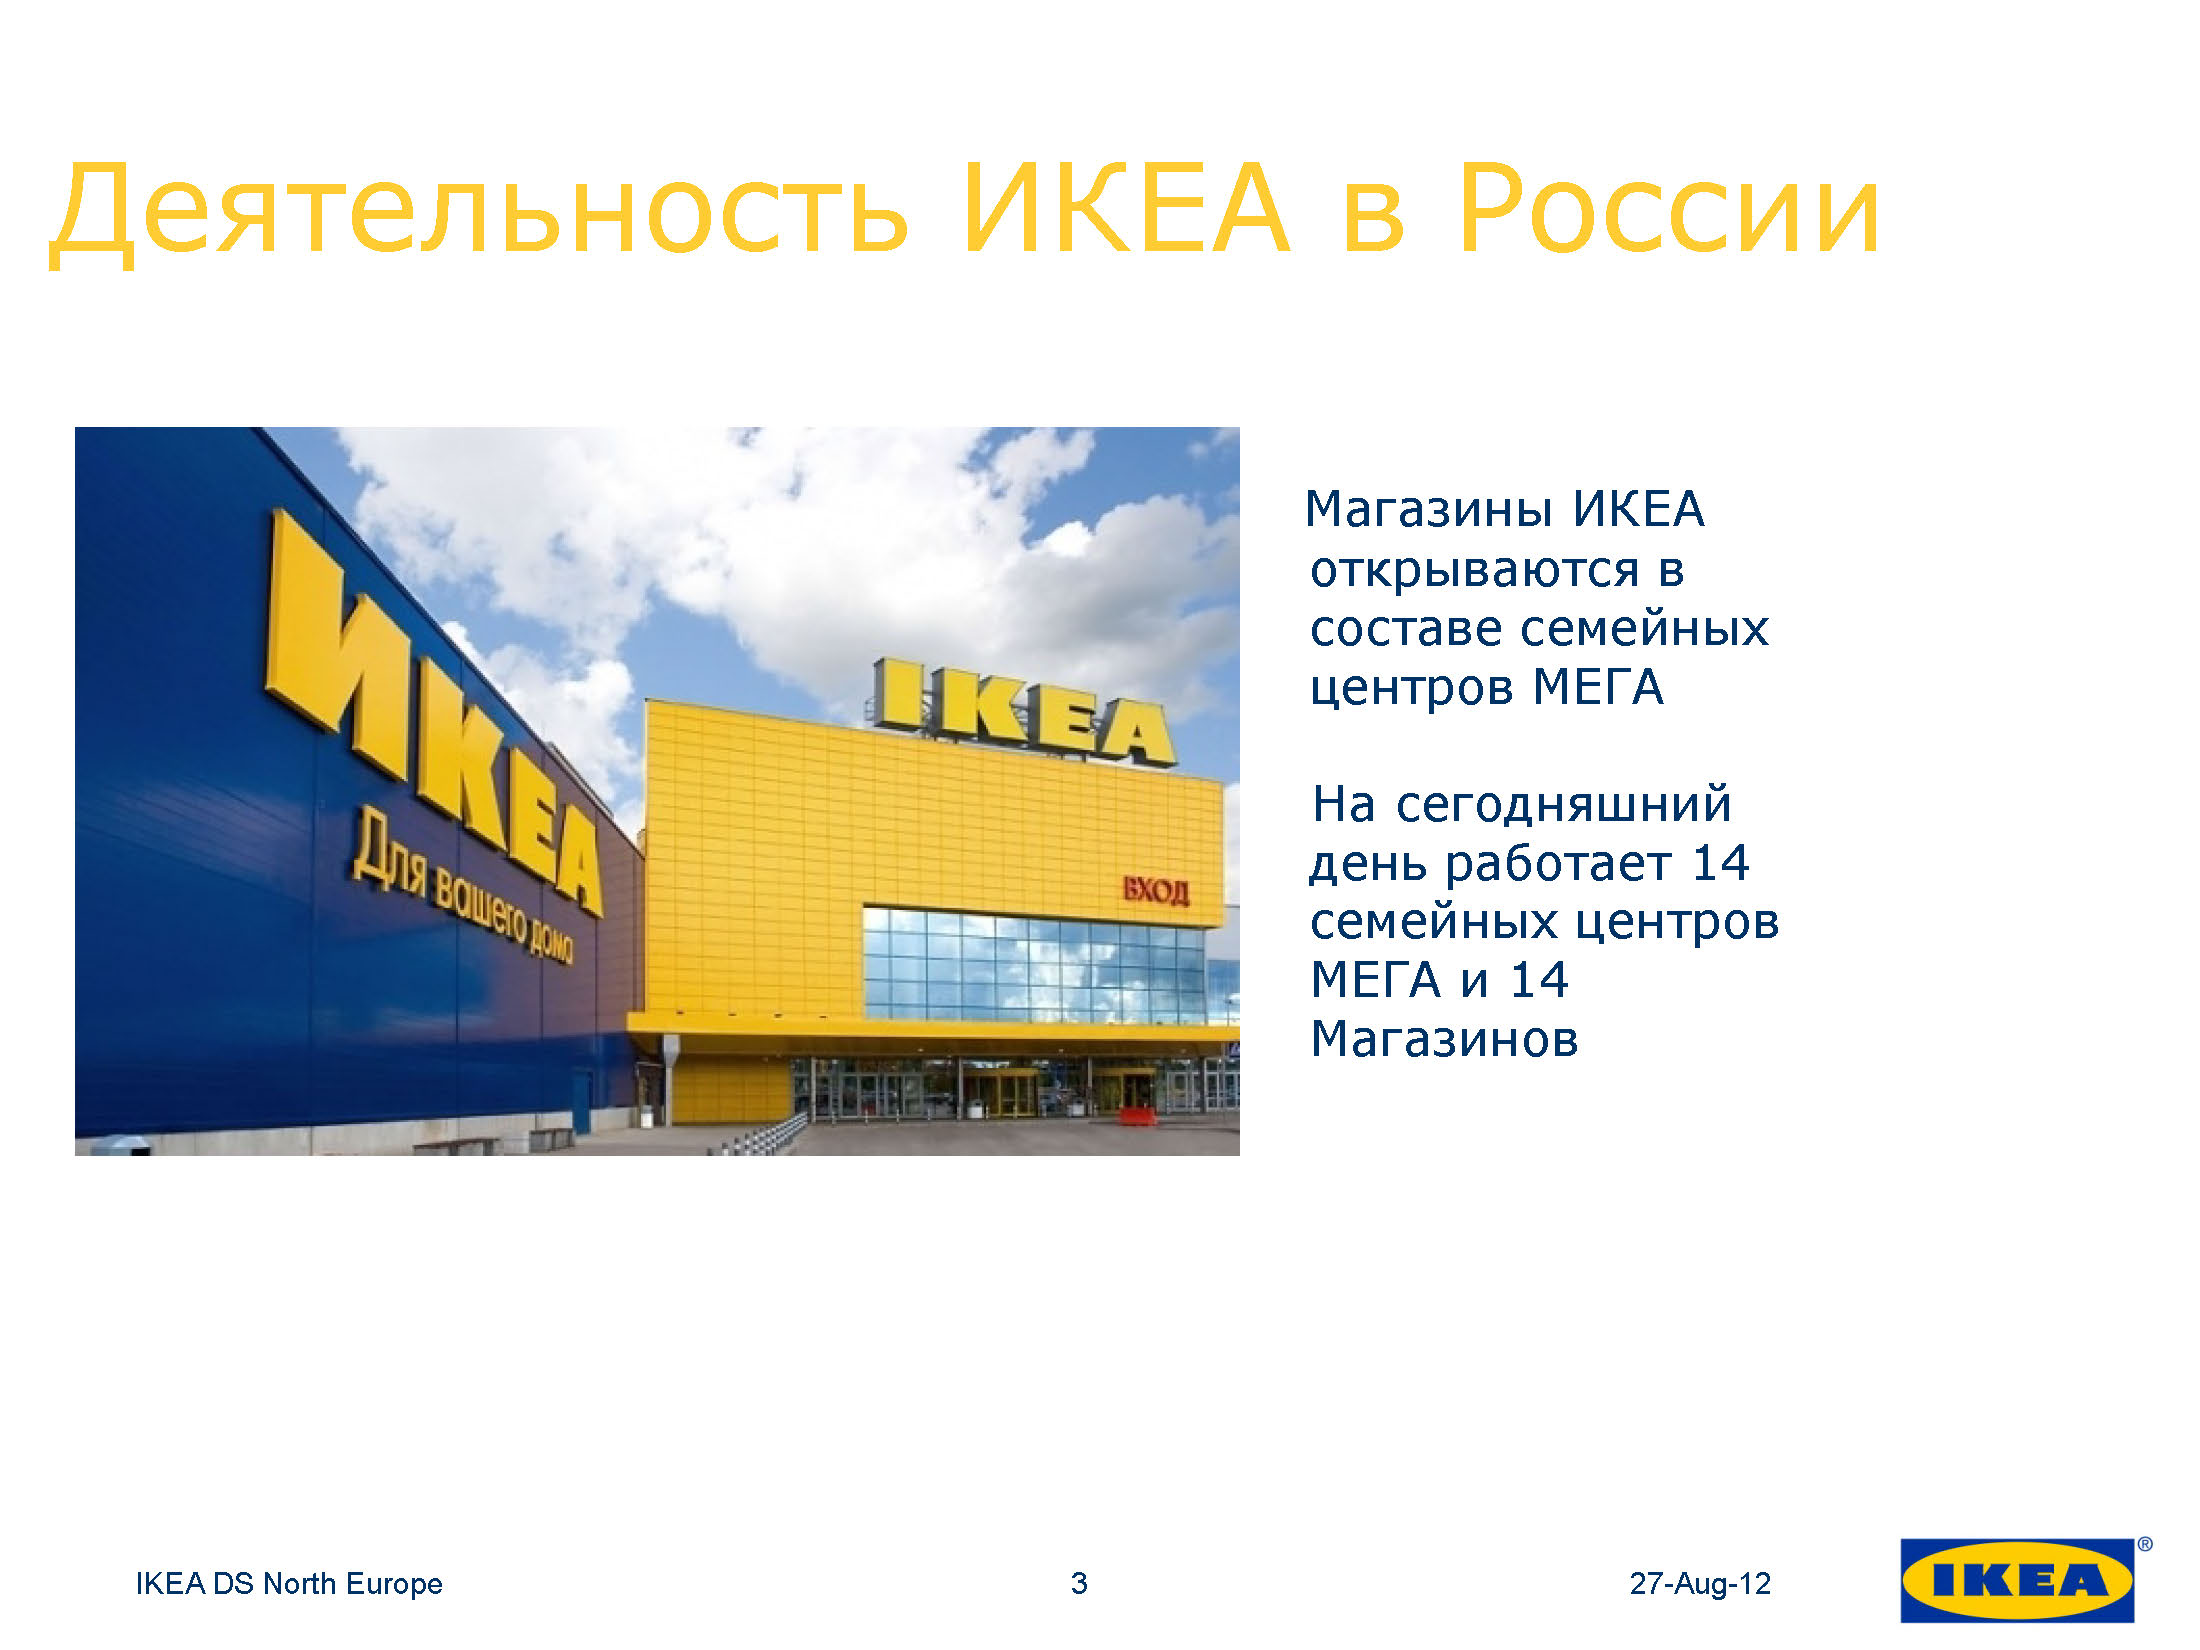 ikea in russia  ikea in russia introduction today, we present our analysis of the adaptation of a multinational in an emerging country we chose to study the ikea's case because the company is the leader in the field of interior design and furniture.